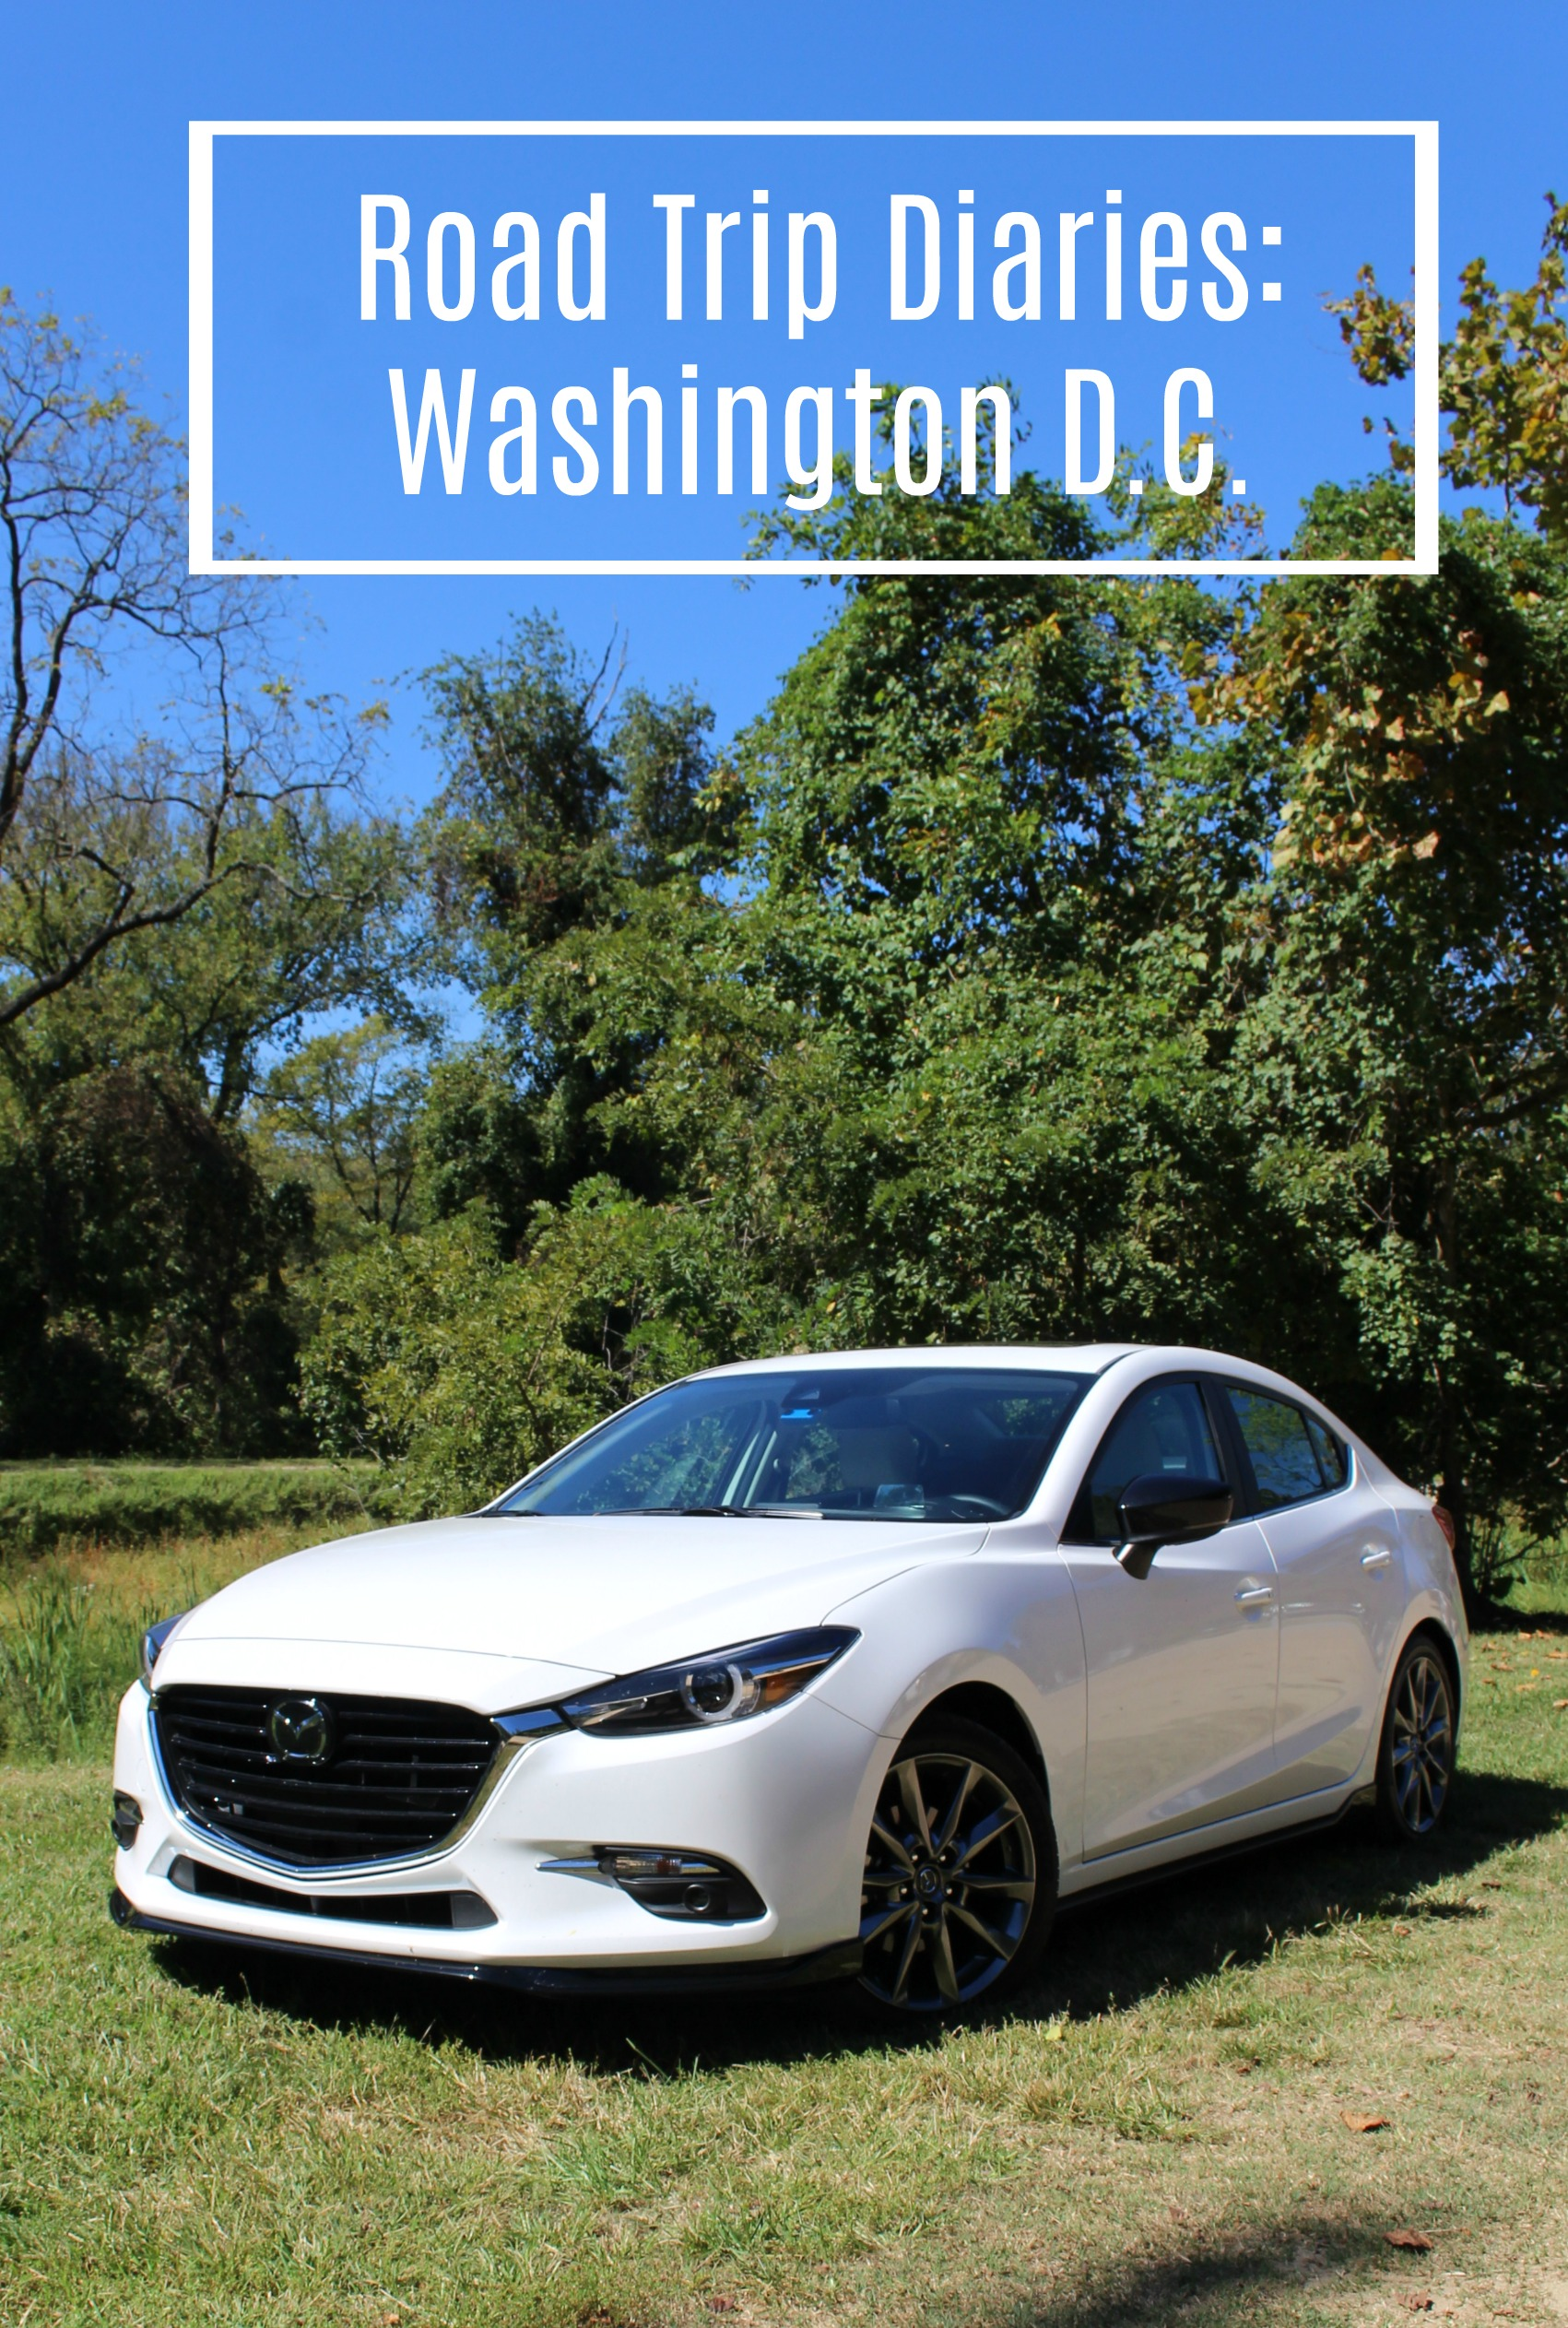 Road Trip Diaries- Washington D.C. Edition